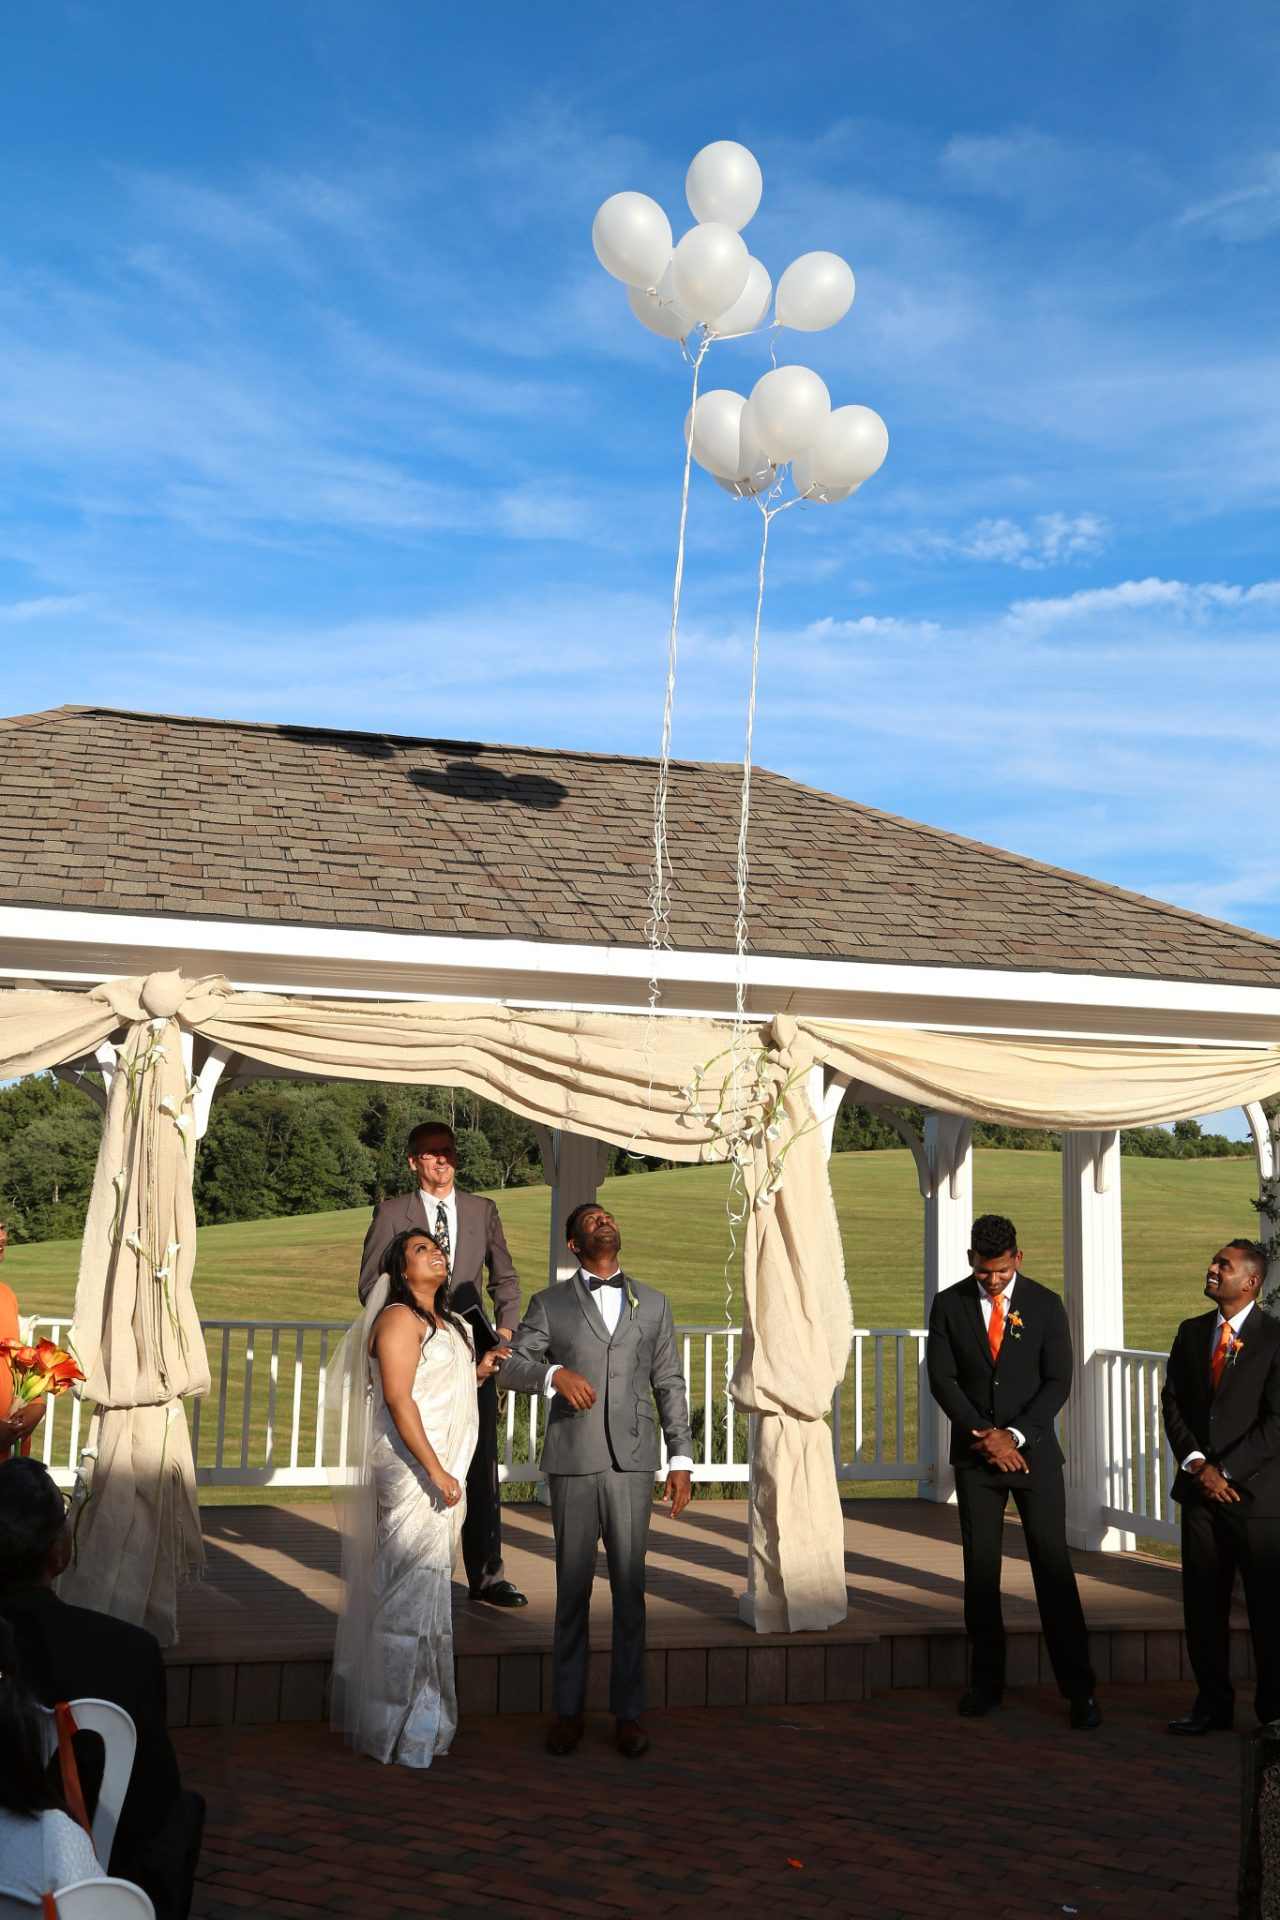 Balloon release after wedding ceremony